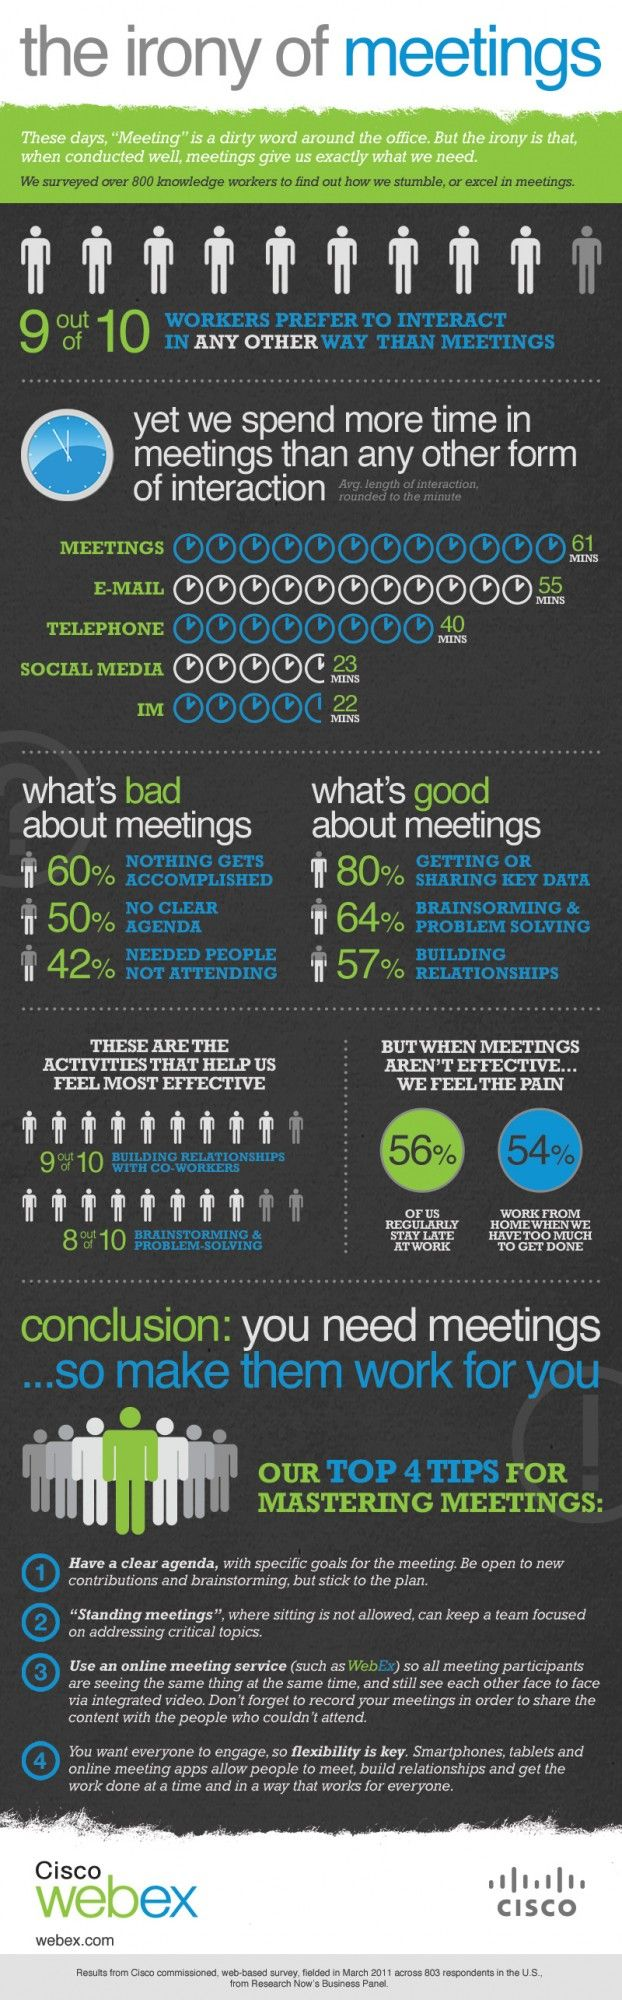 INFOGRAPHIC: The Irony of Meetings  (Proof that social interaction is better than in-person meetings?)